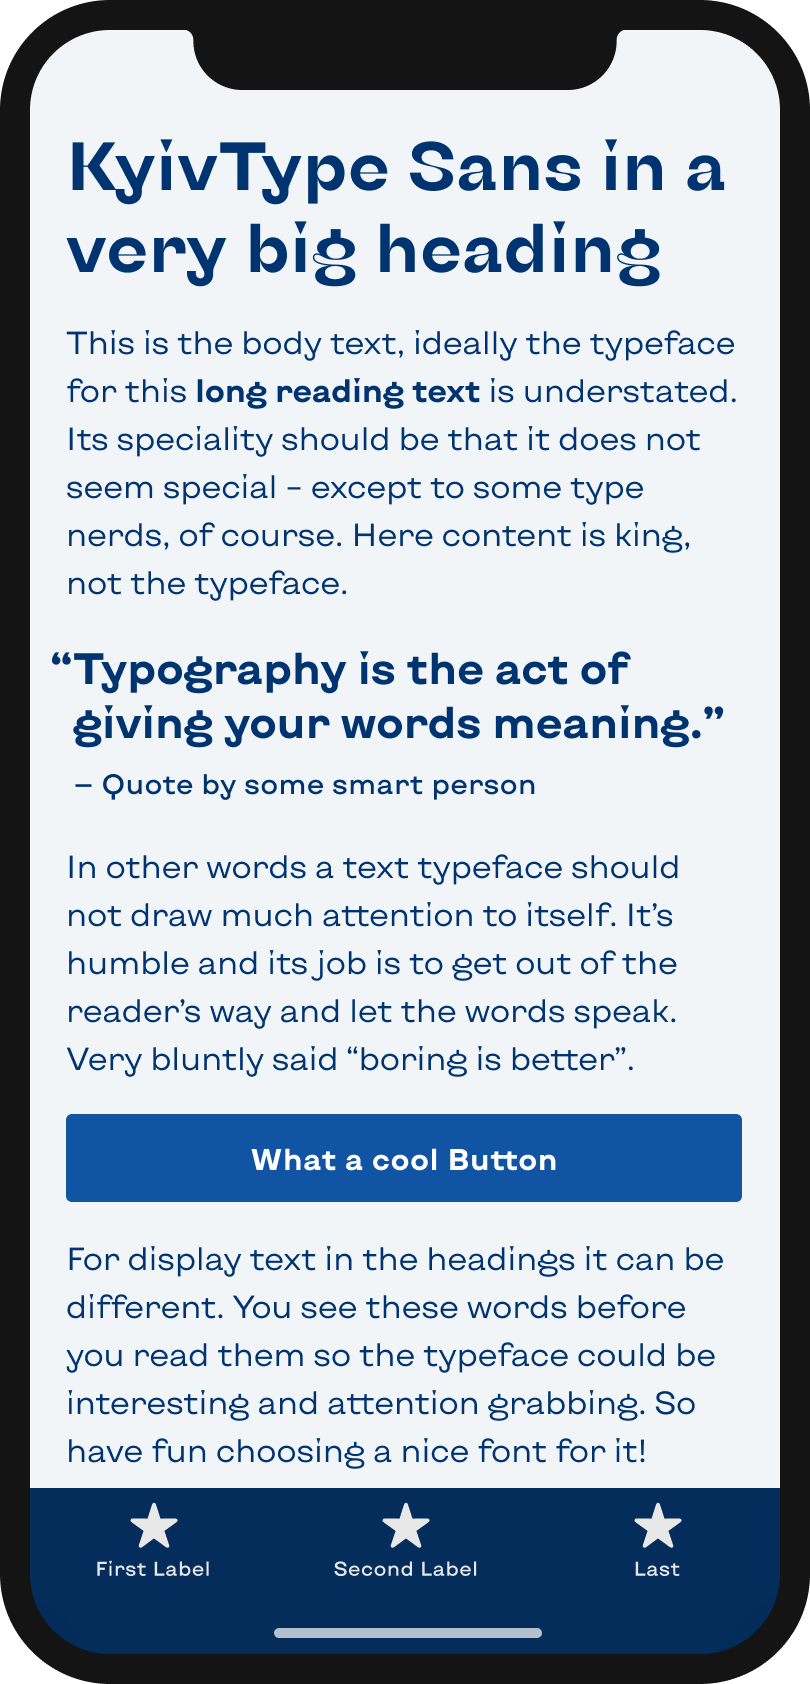 The sans-serif typeface KyivType Sans on a mobile phone in a headline, body text, a pull quote and the labels of a button and navigation.